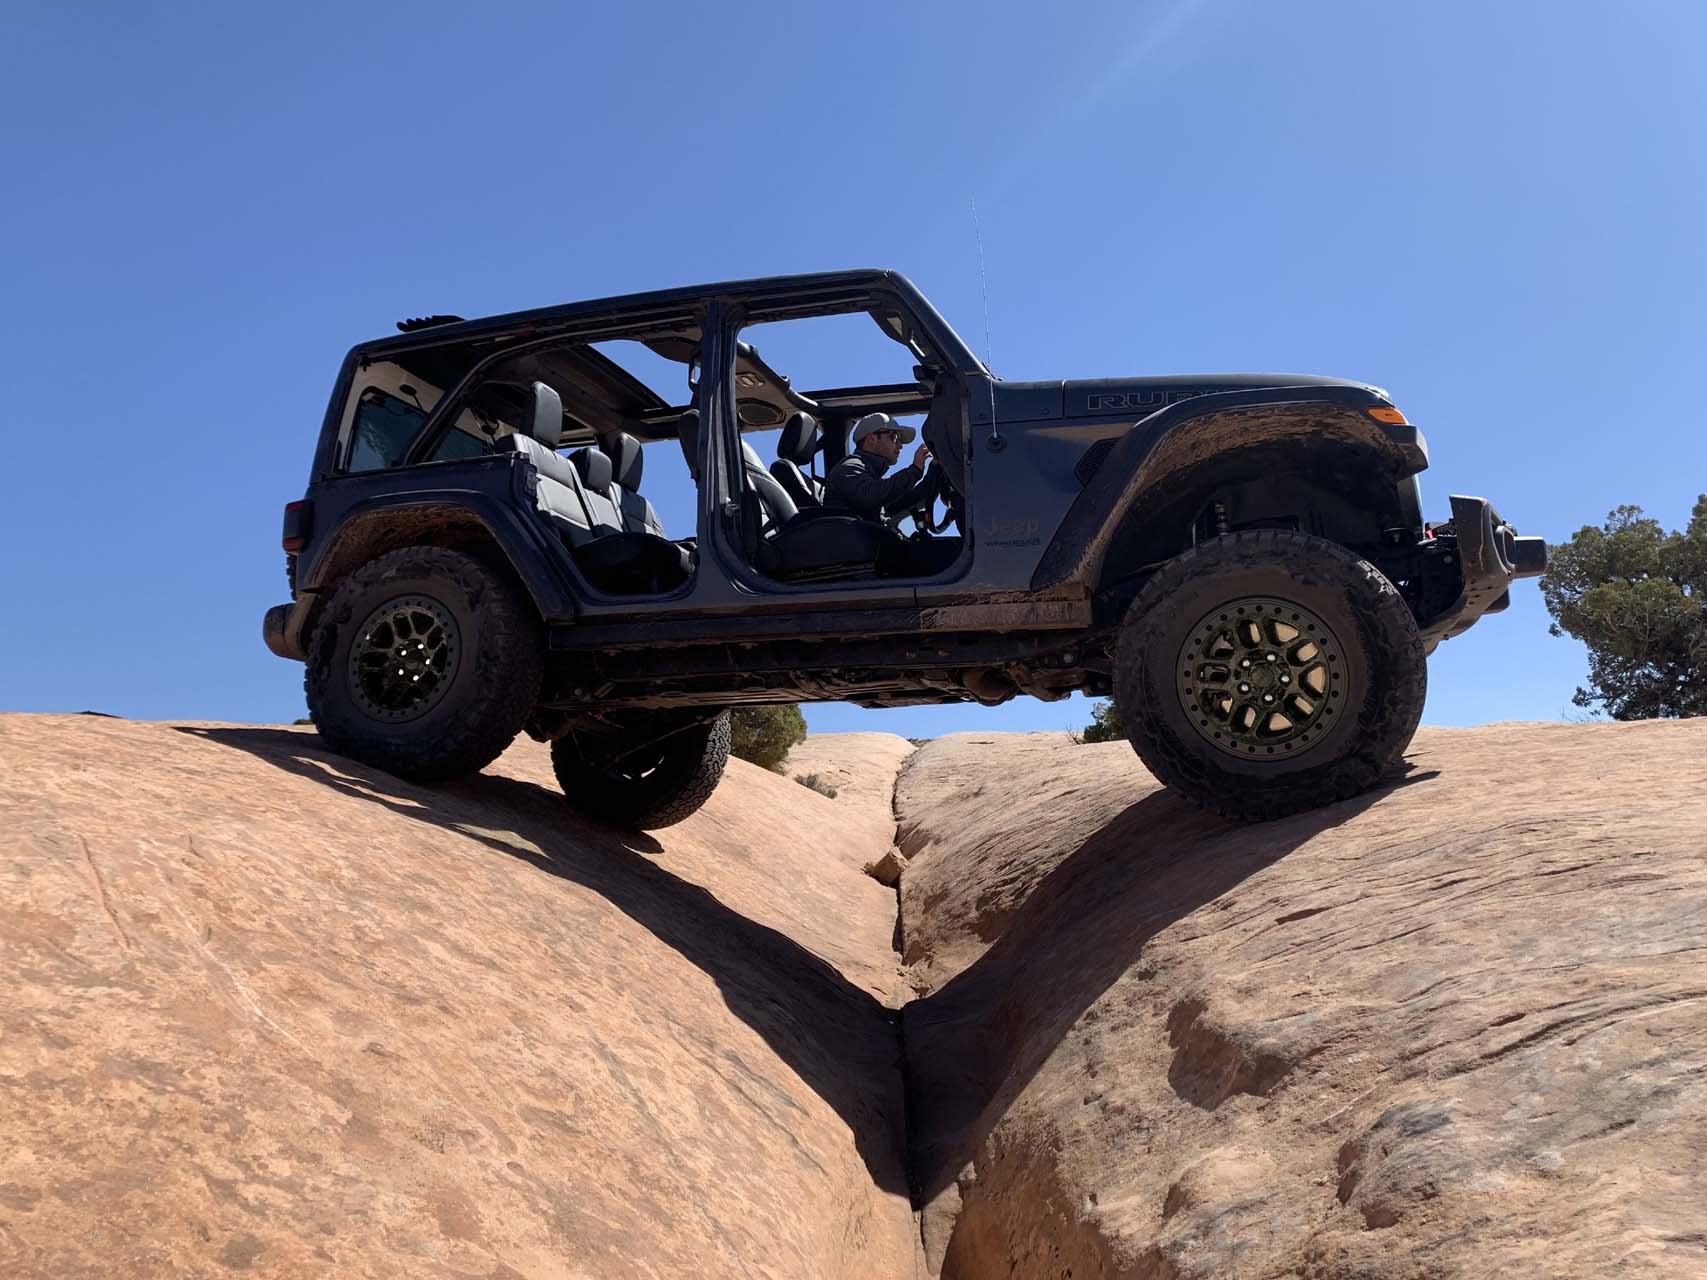 Rubicon 392 with the Xtreme Recon Package